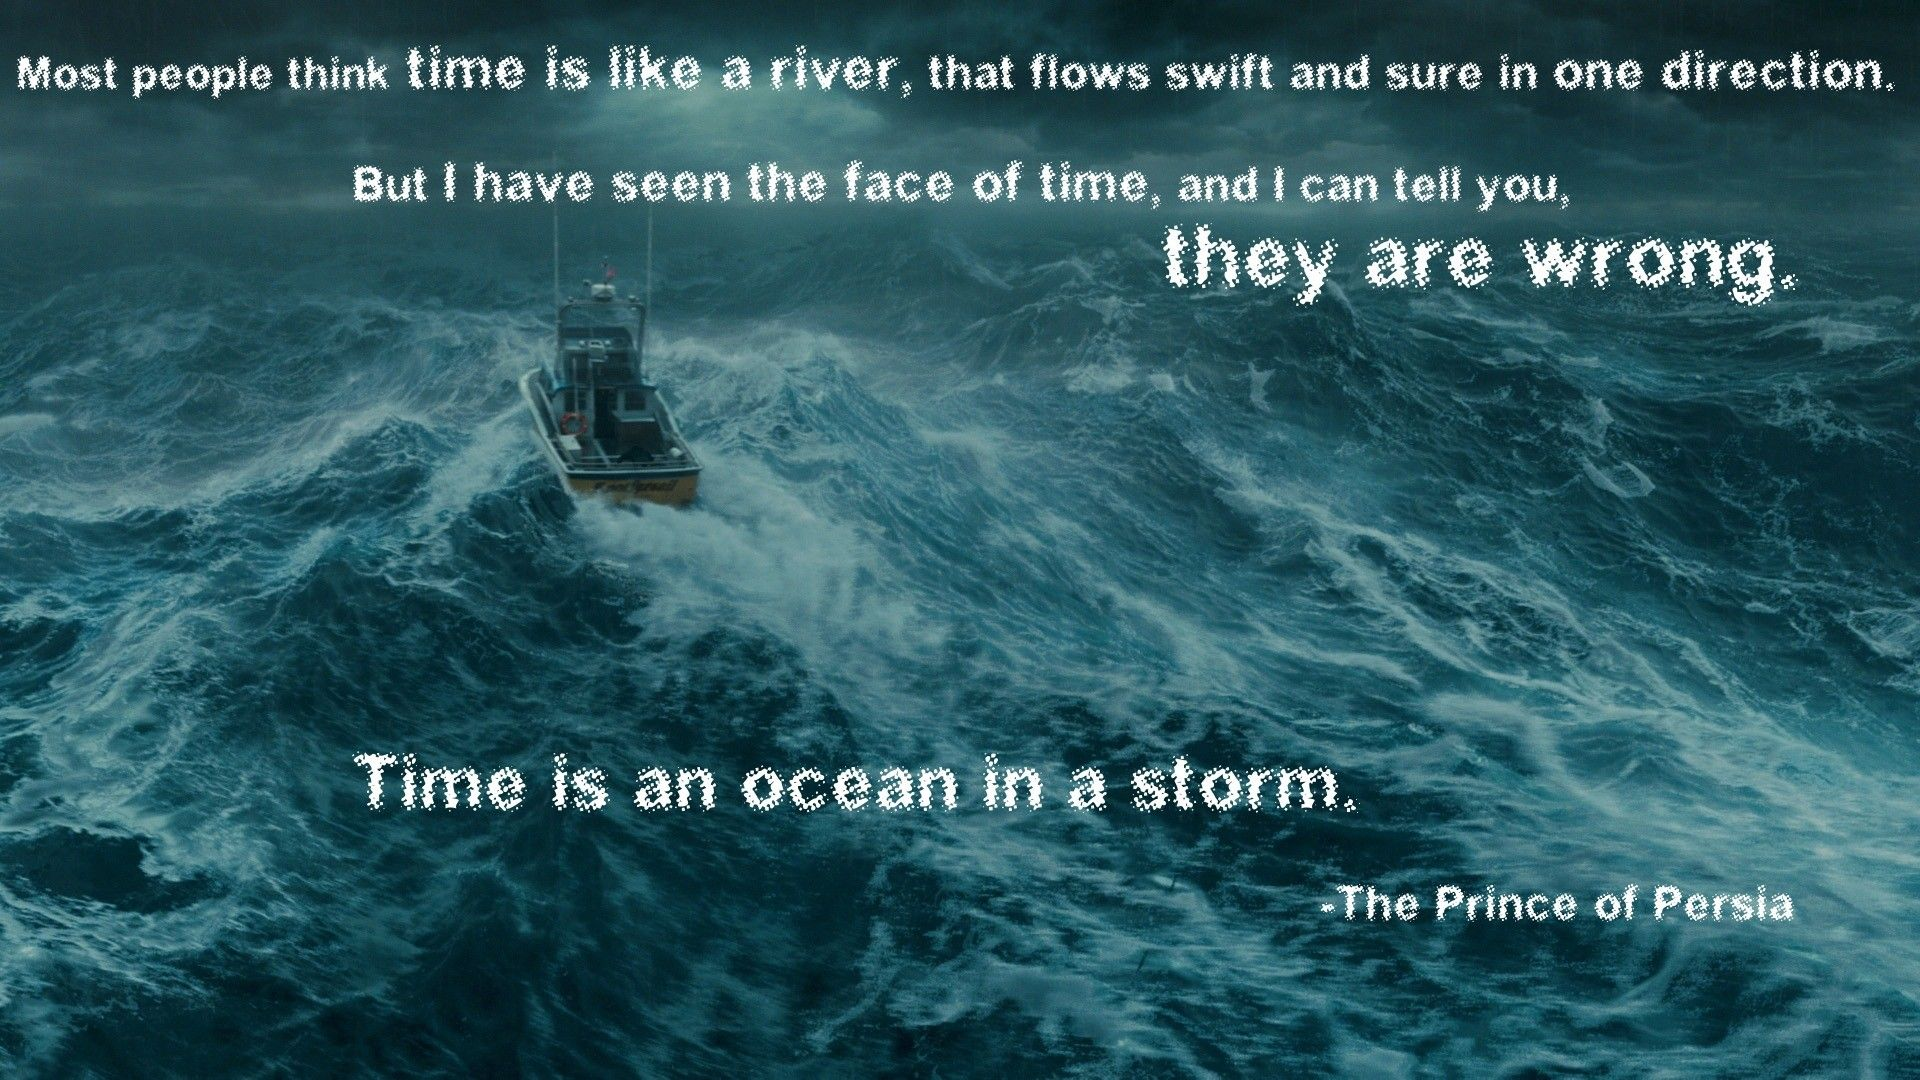 Time is an ocean in a storm